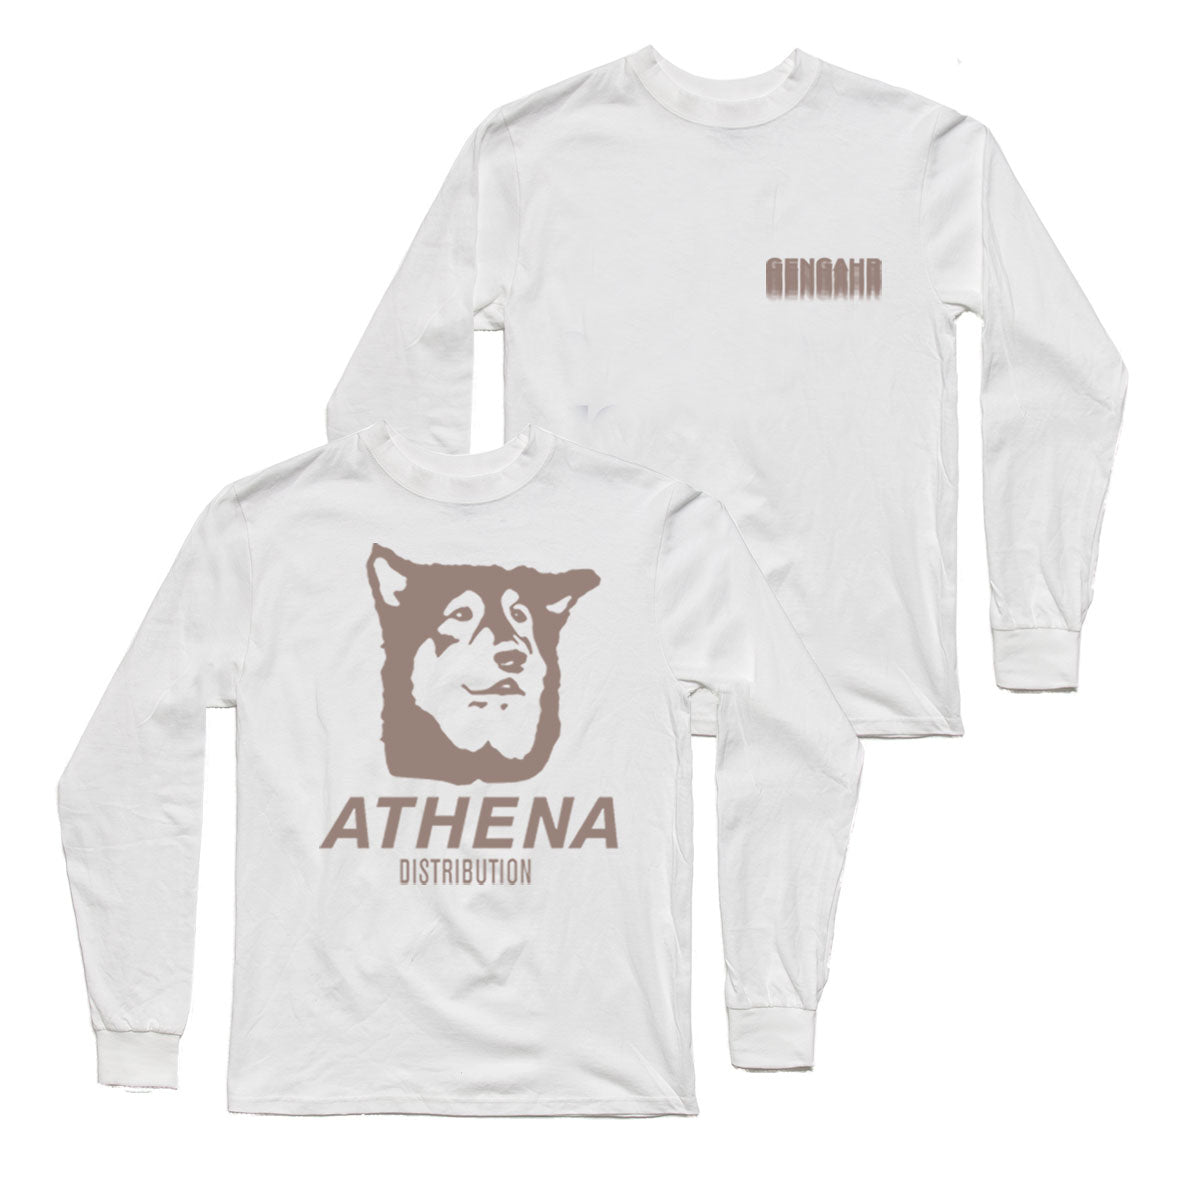 Athena Long Sleeve White Tee